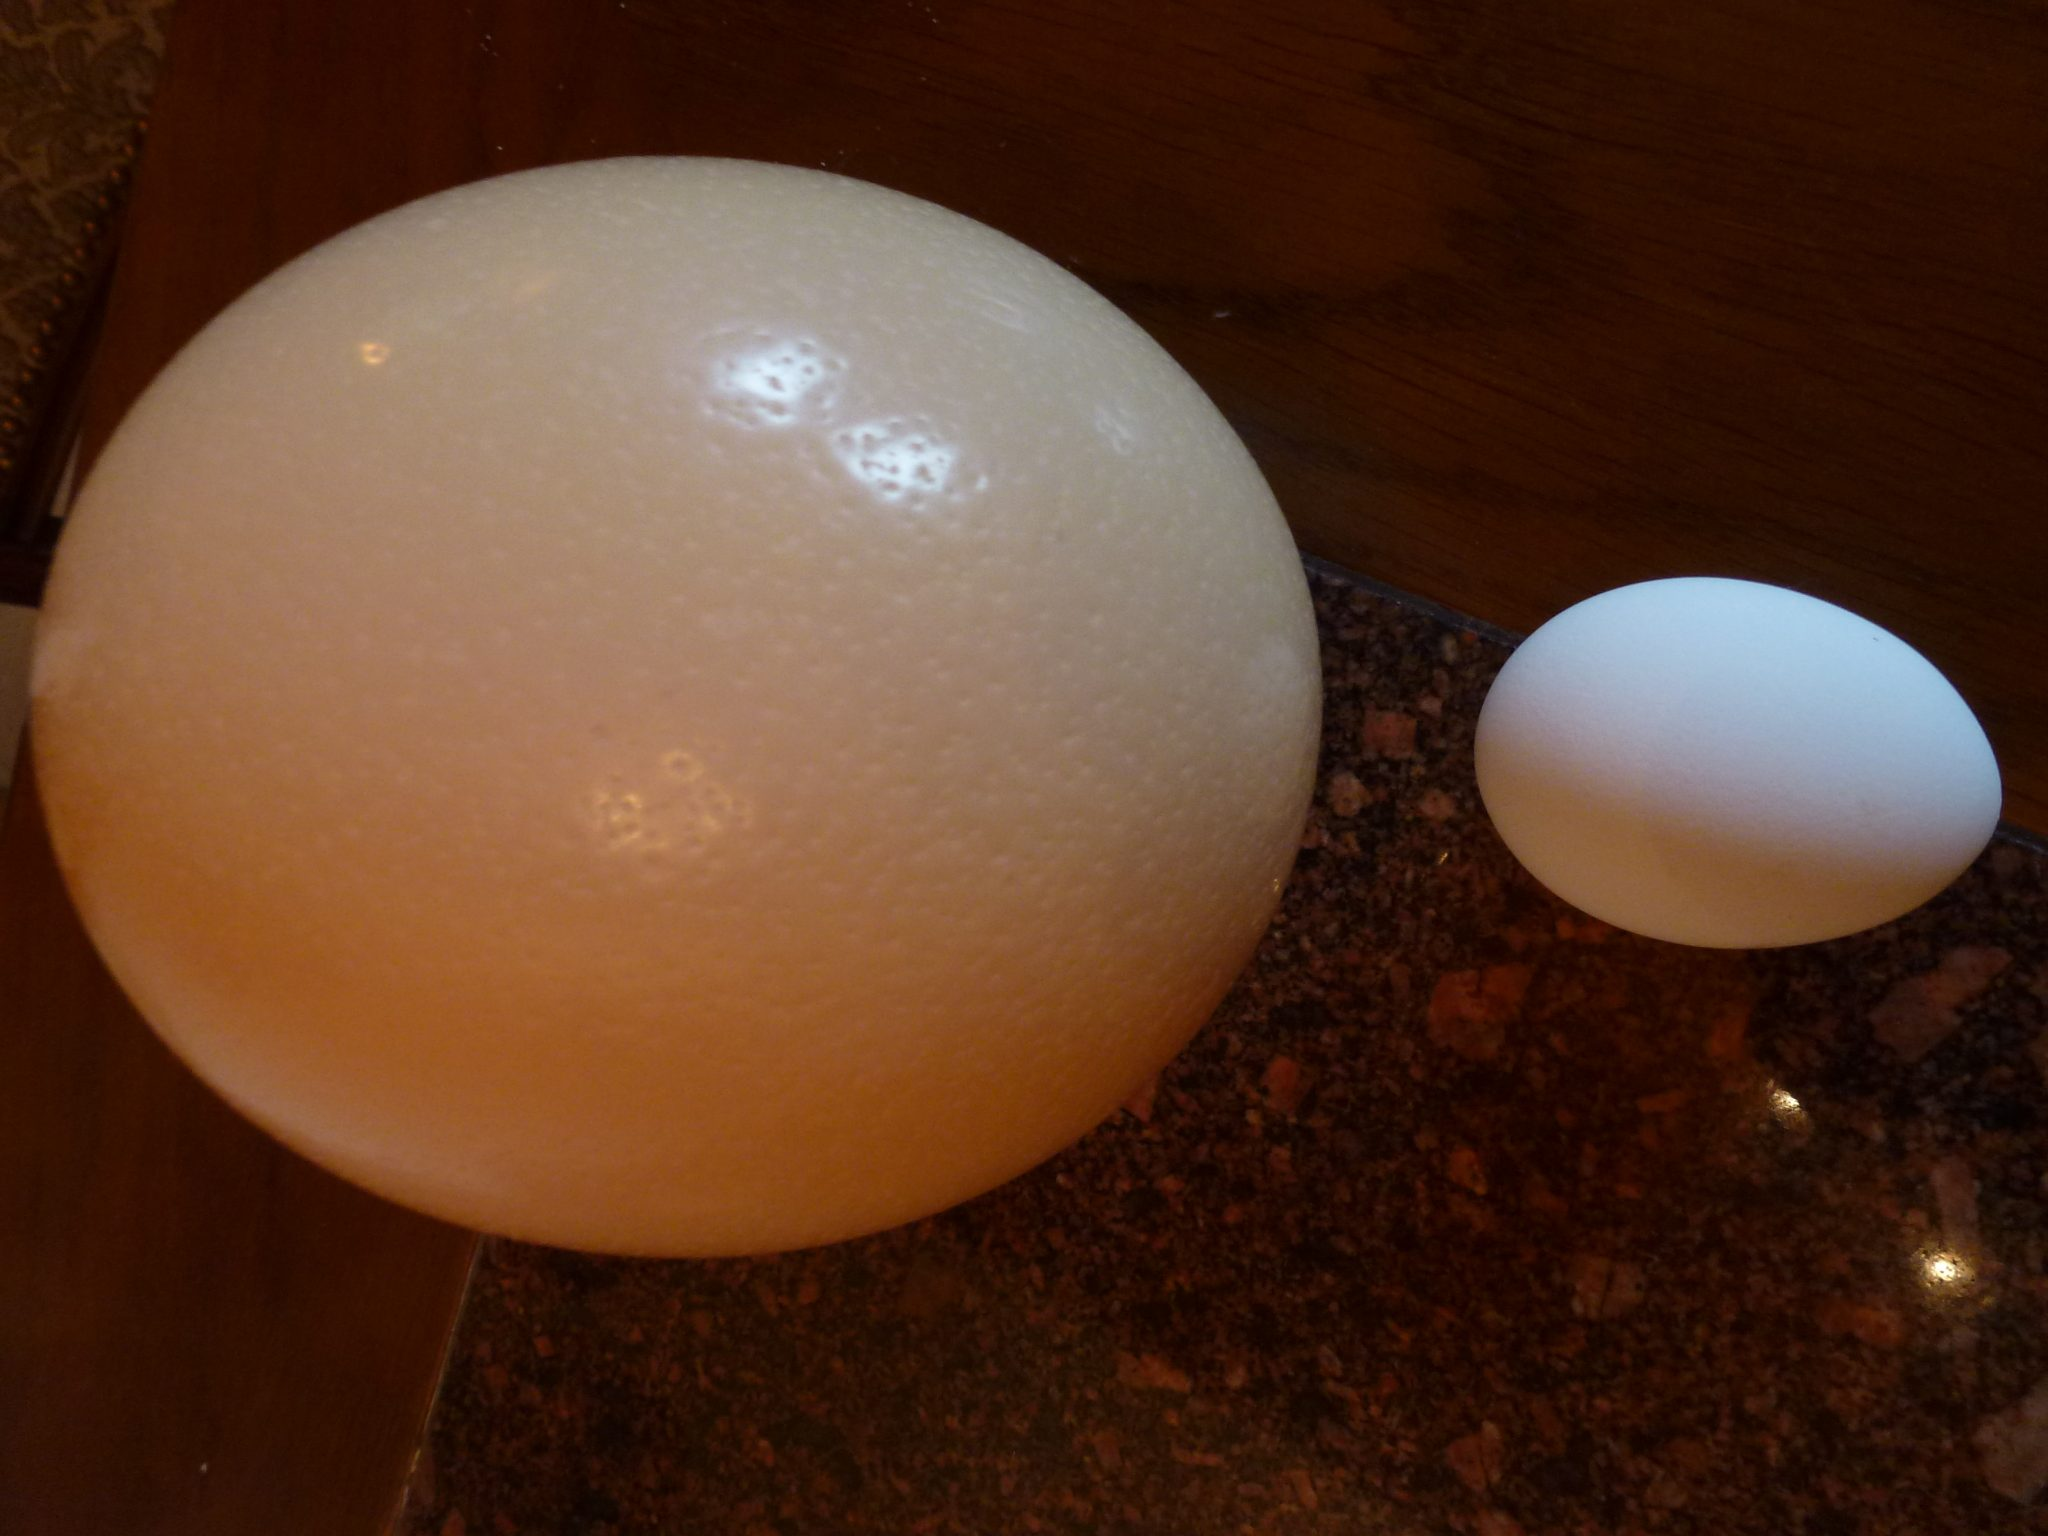 ostrich egg compared to chicken egg